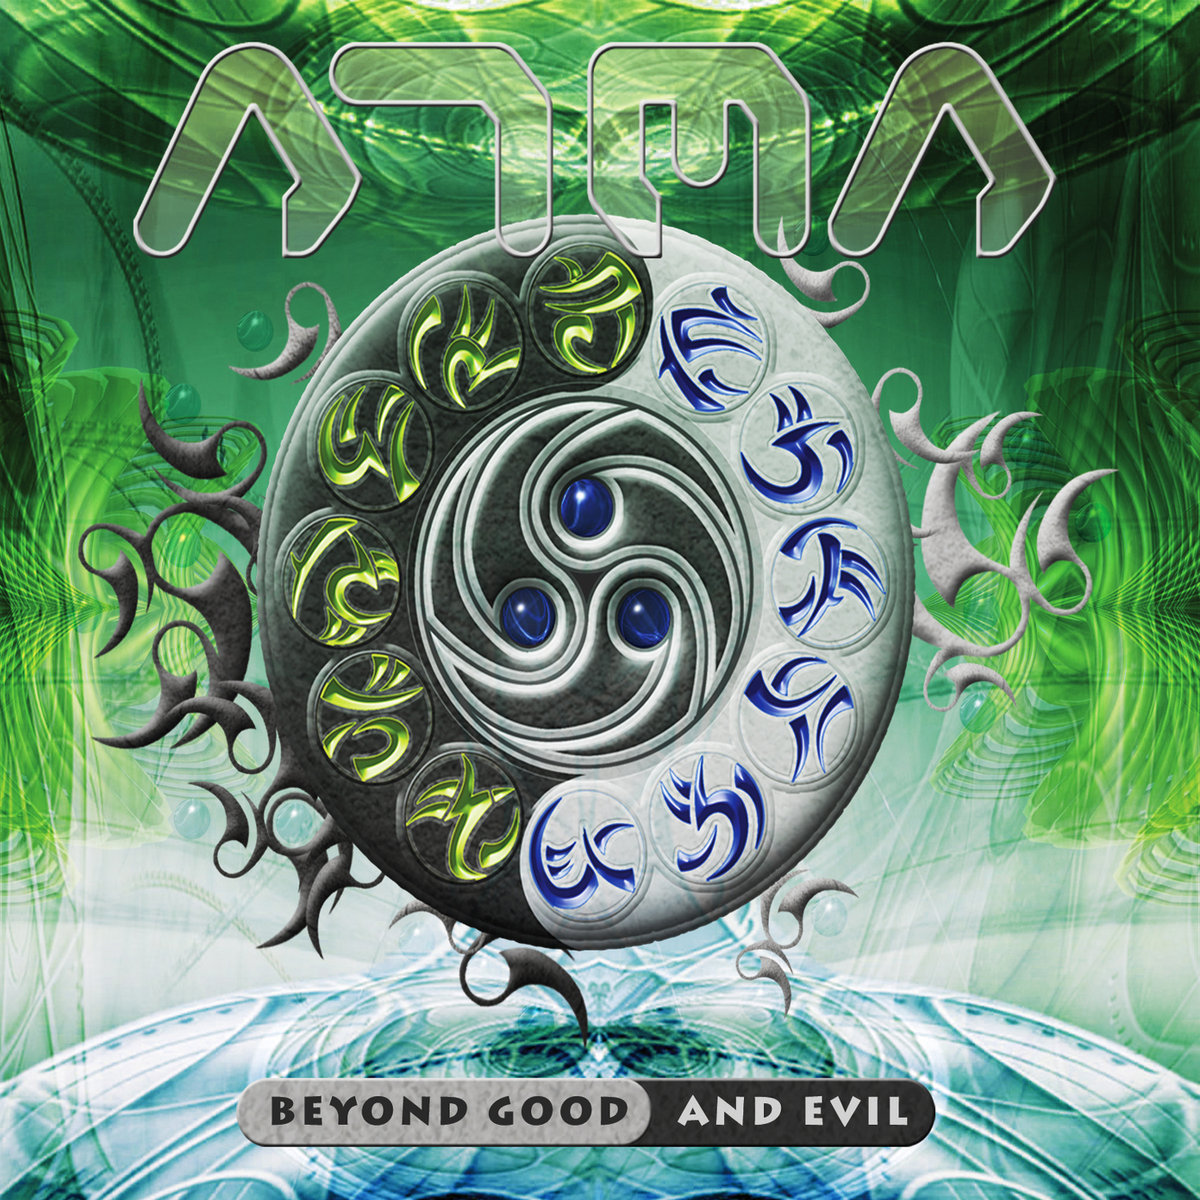 Atma - The Other Side @ 'Beyond Good and Evil' album (electronic, goa)